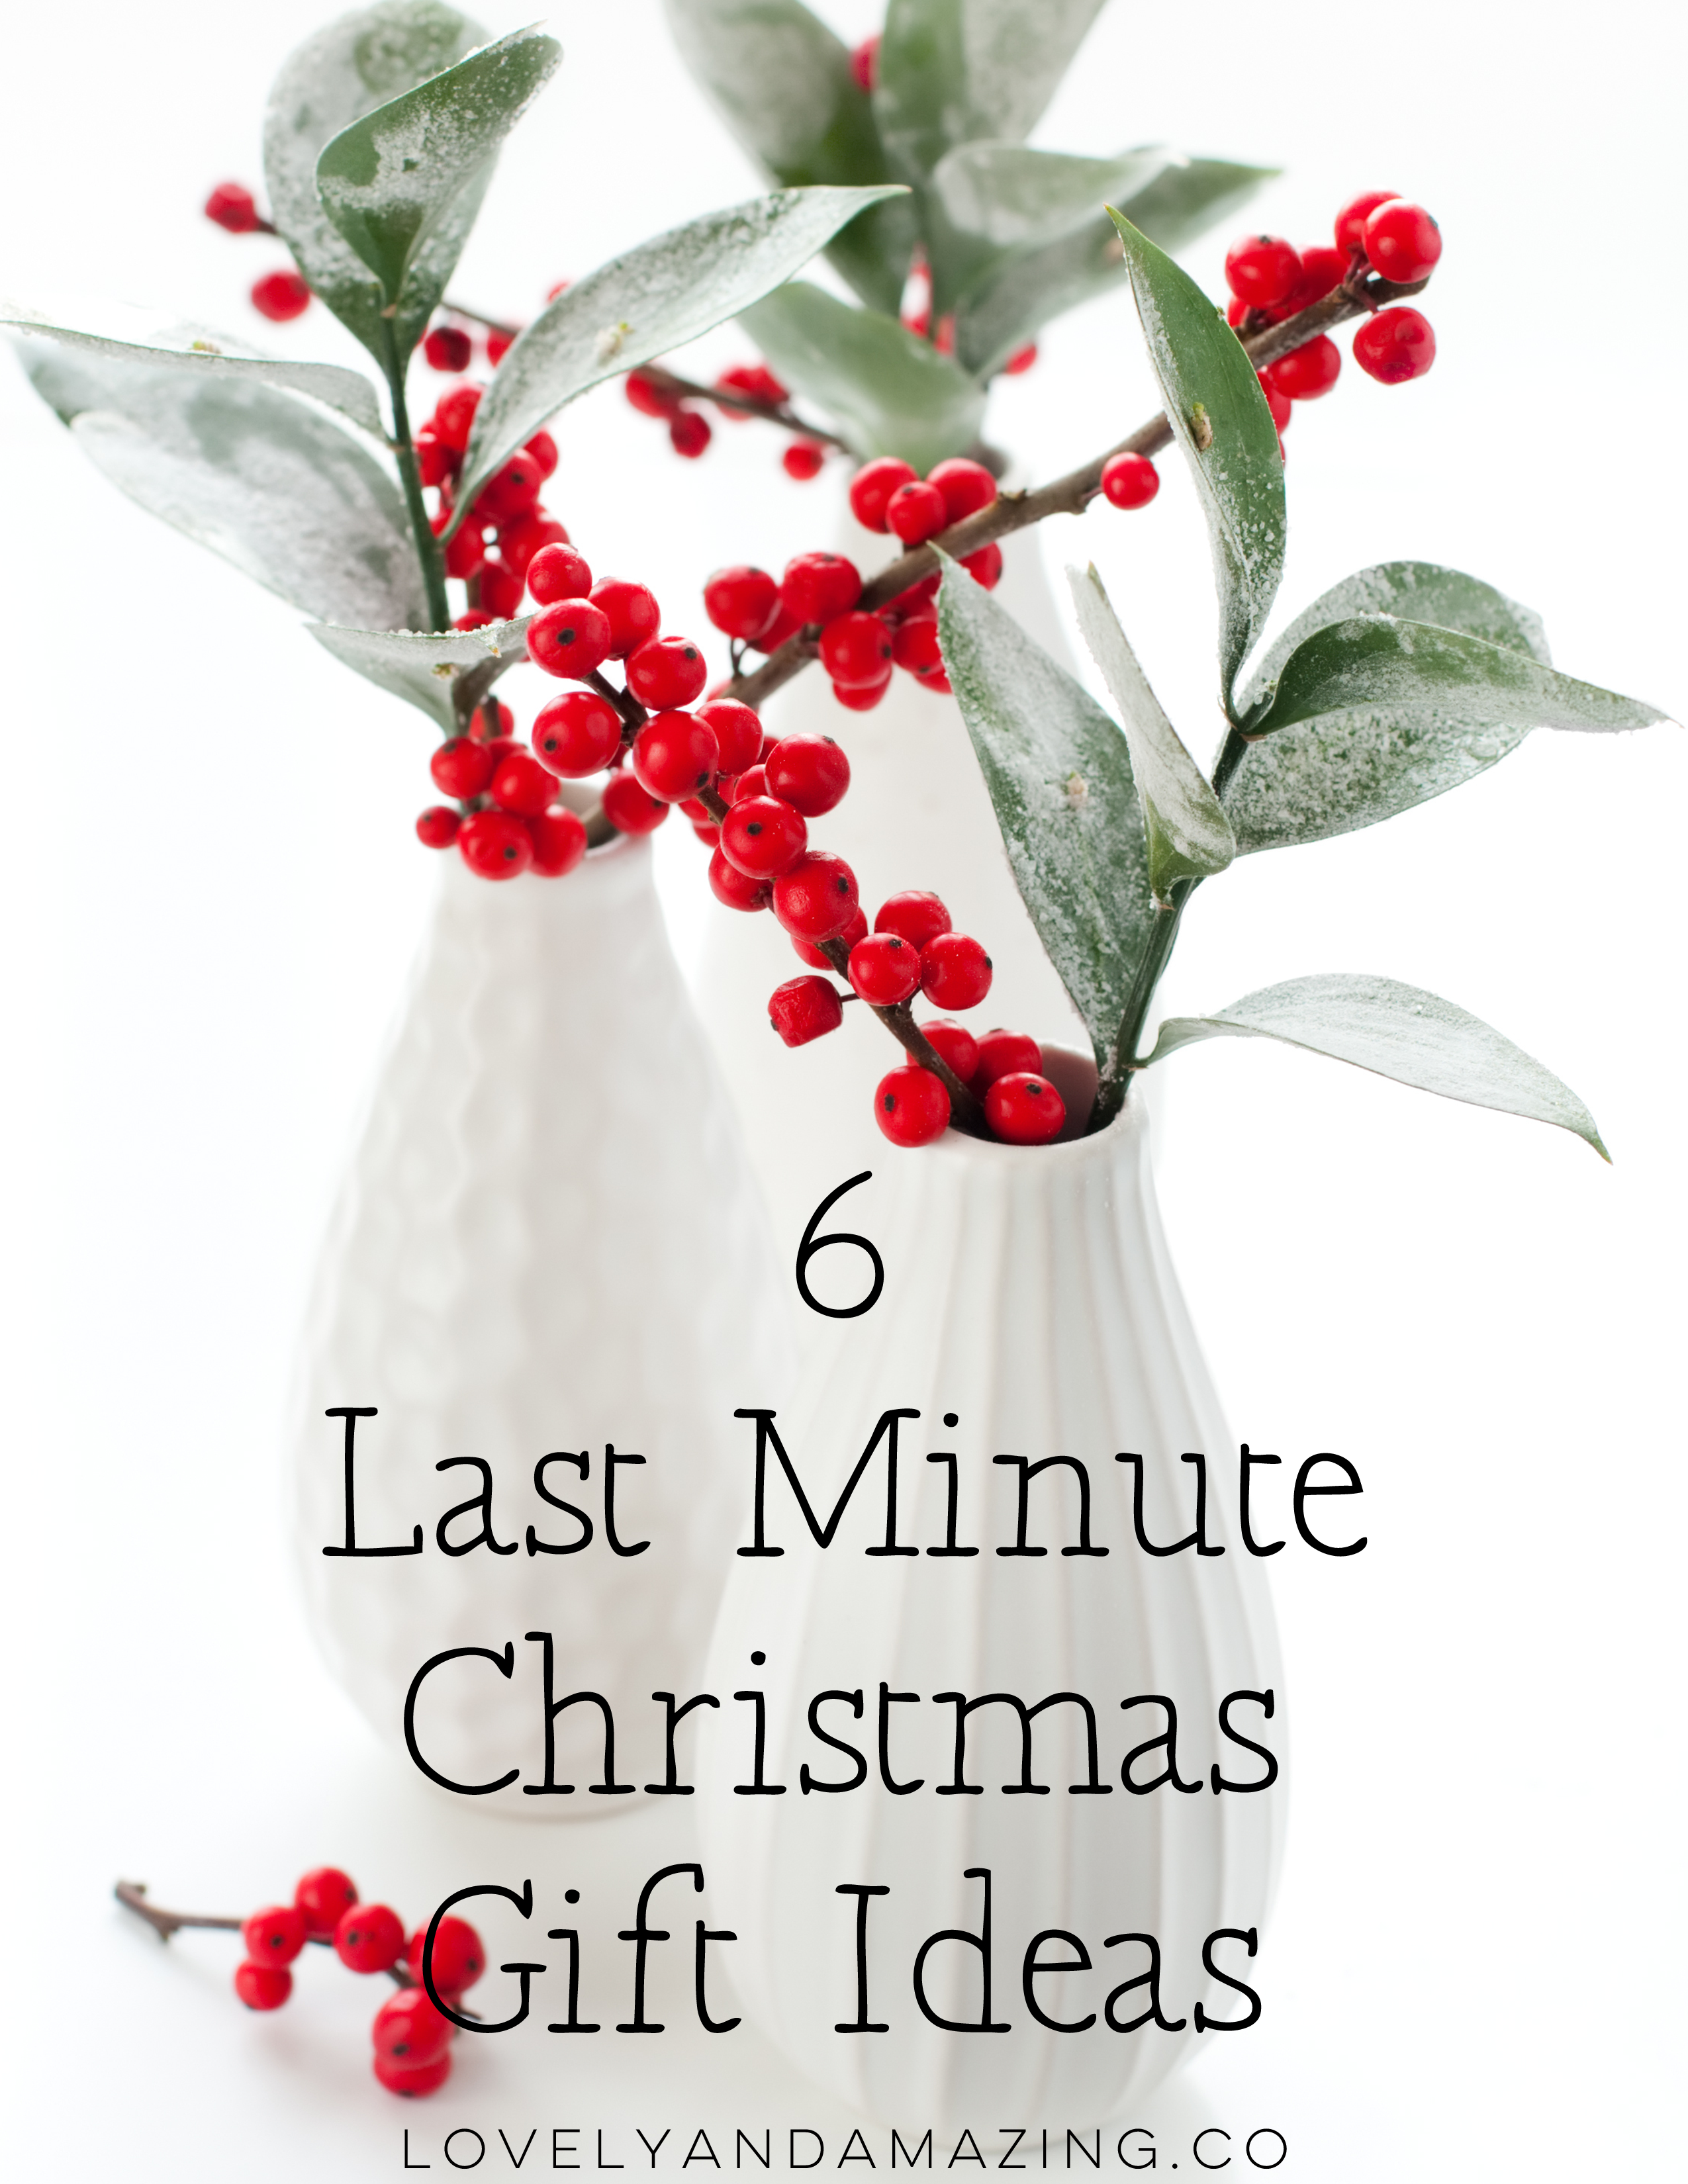 6 Last Minute Christmas Gift Ideas - Lovely and Amazing Weddings